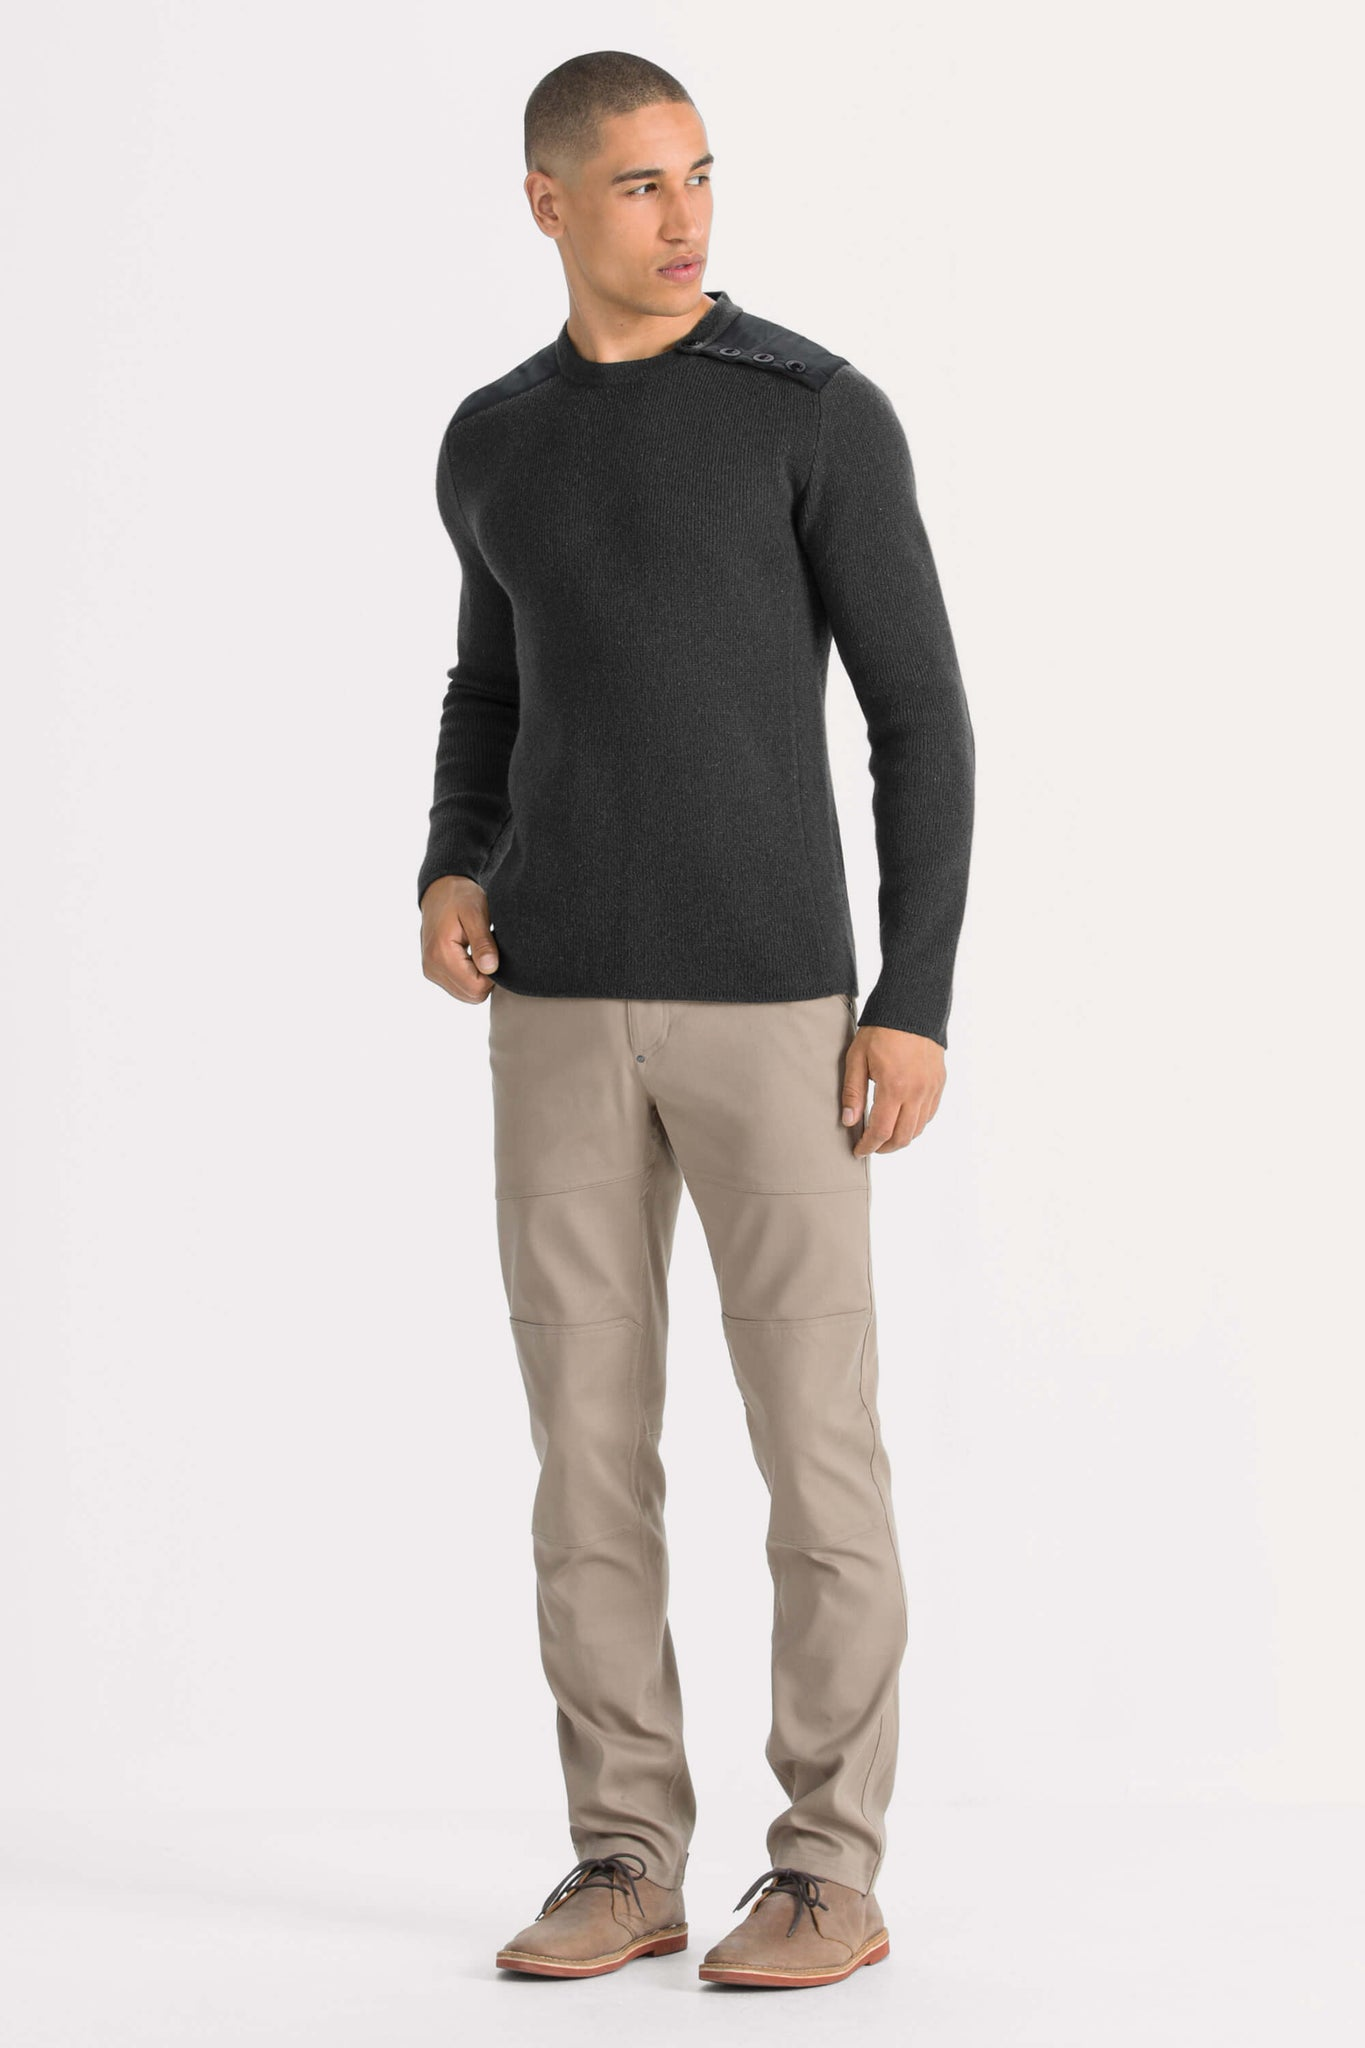 men's recycled wool stealth crew neck sweater - caviar heather